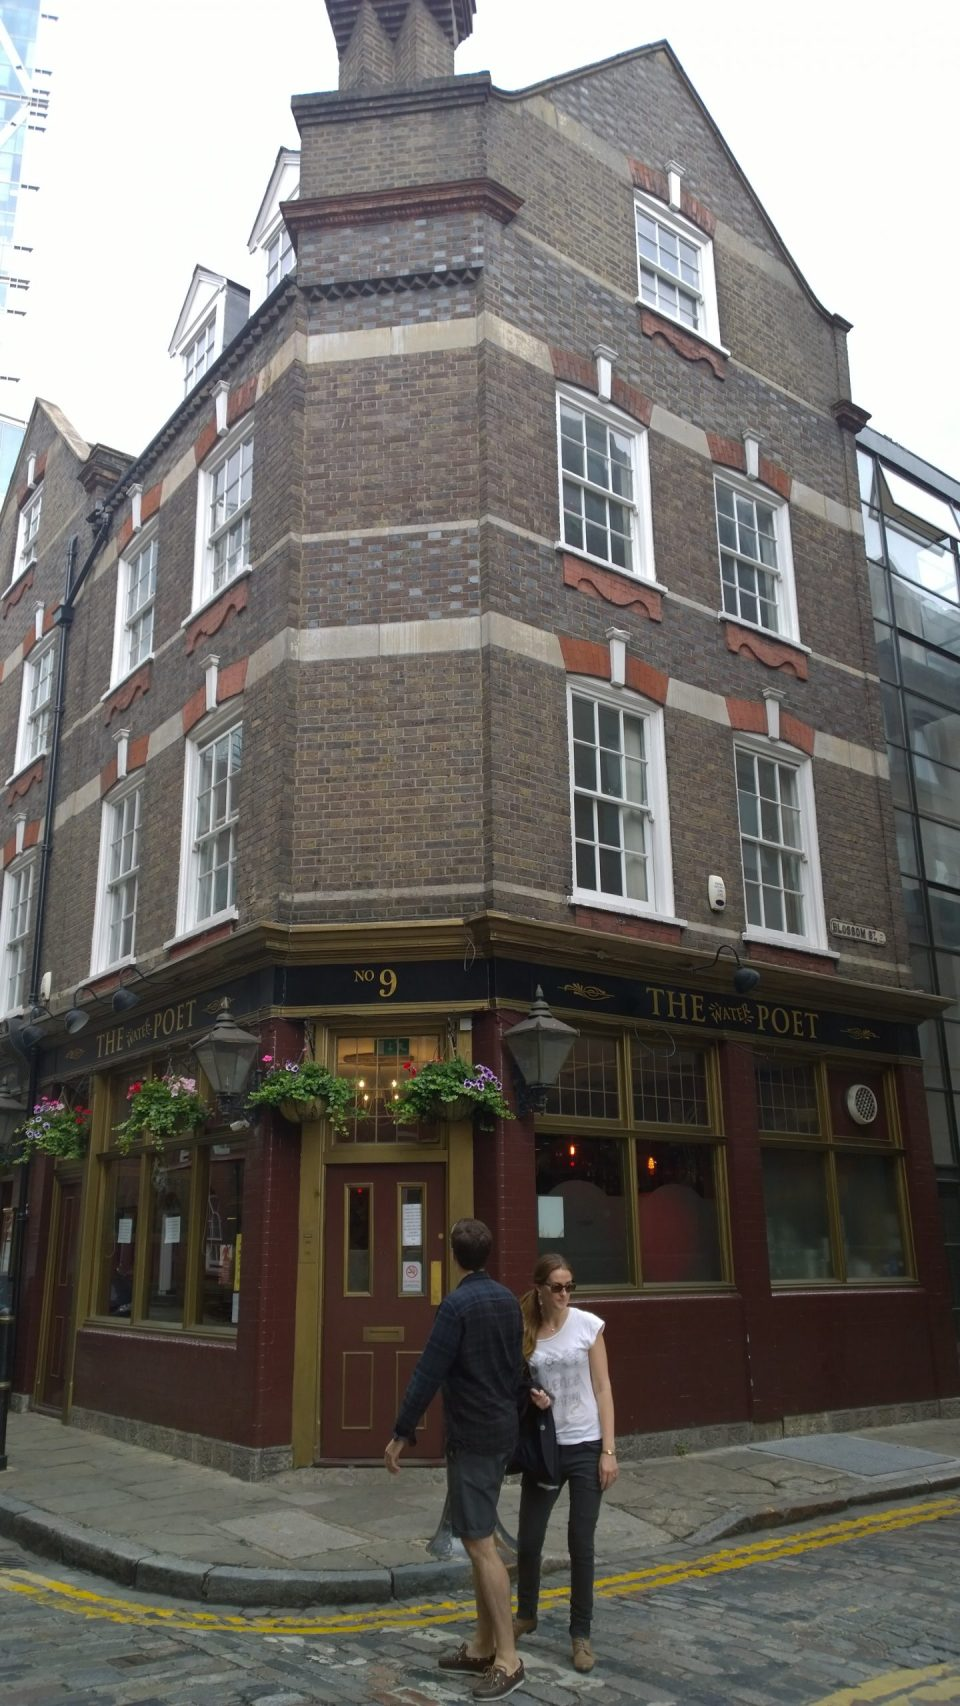 The Water Poet pub will be saved, but the buildings either side will see wholescale re-development